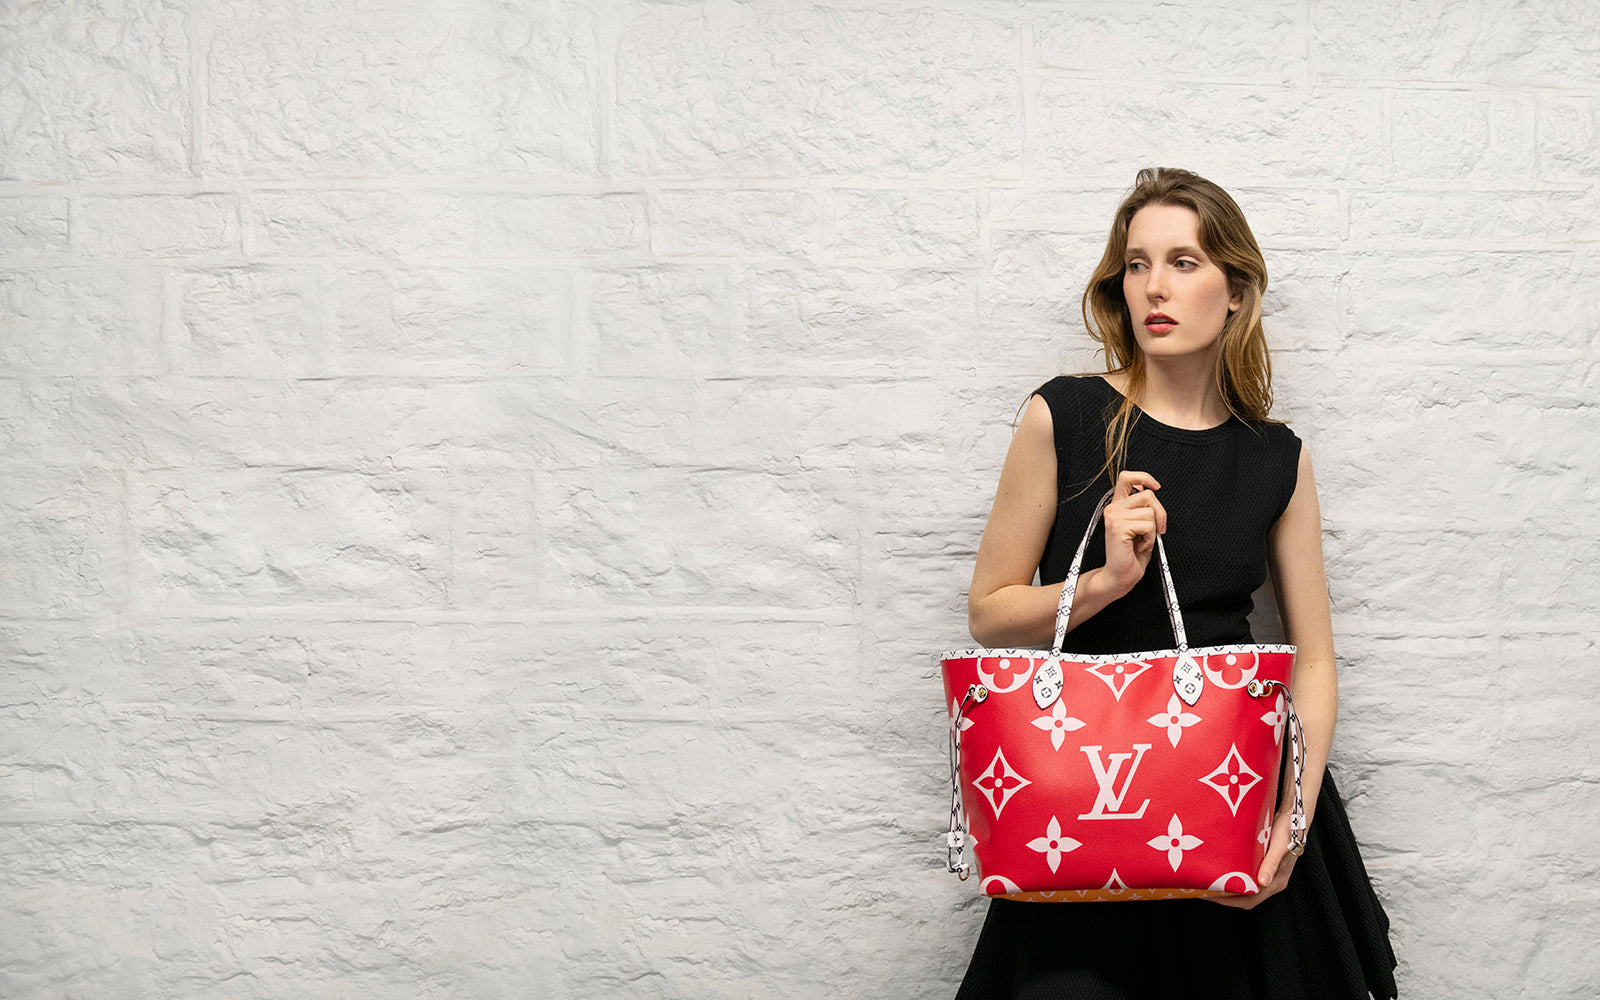 Discover authentic pre-loved Louis Vuitton handbags and more